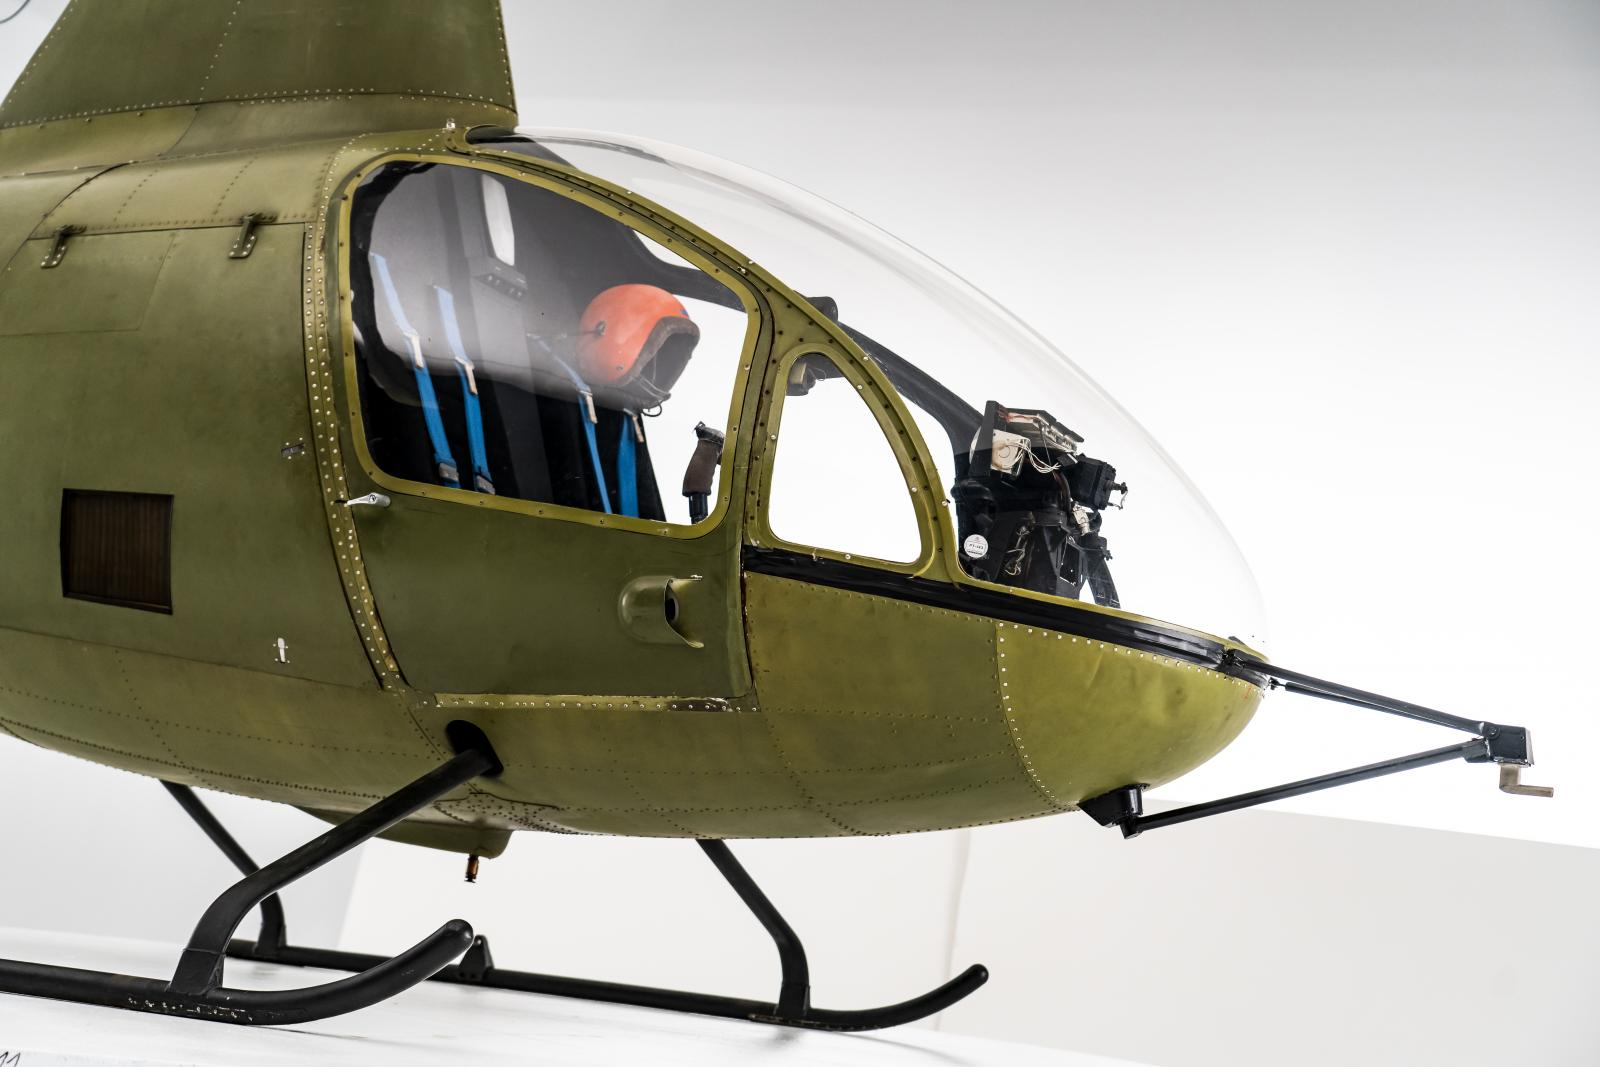 RE2 HELIKOPTER